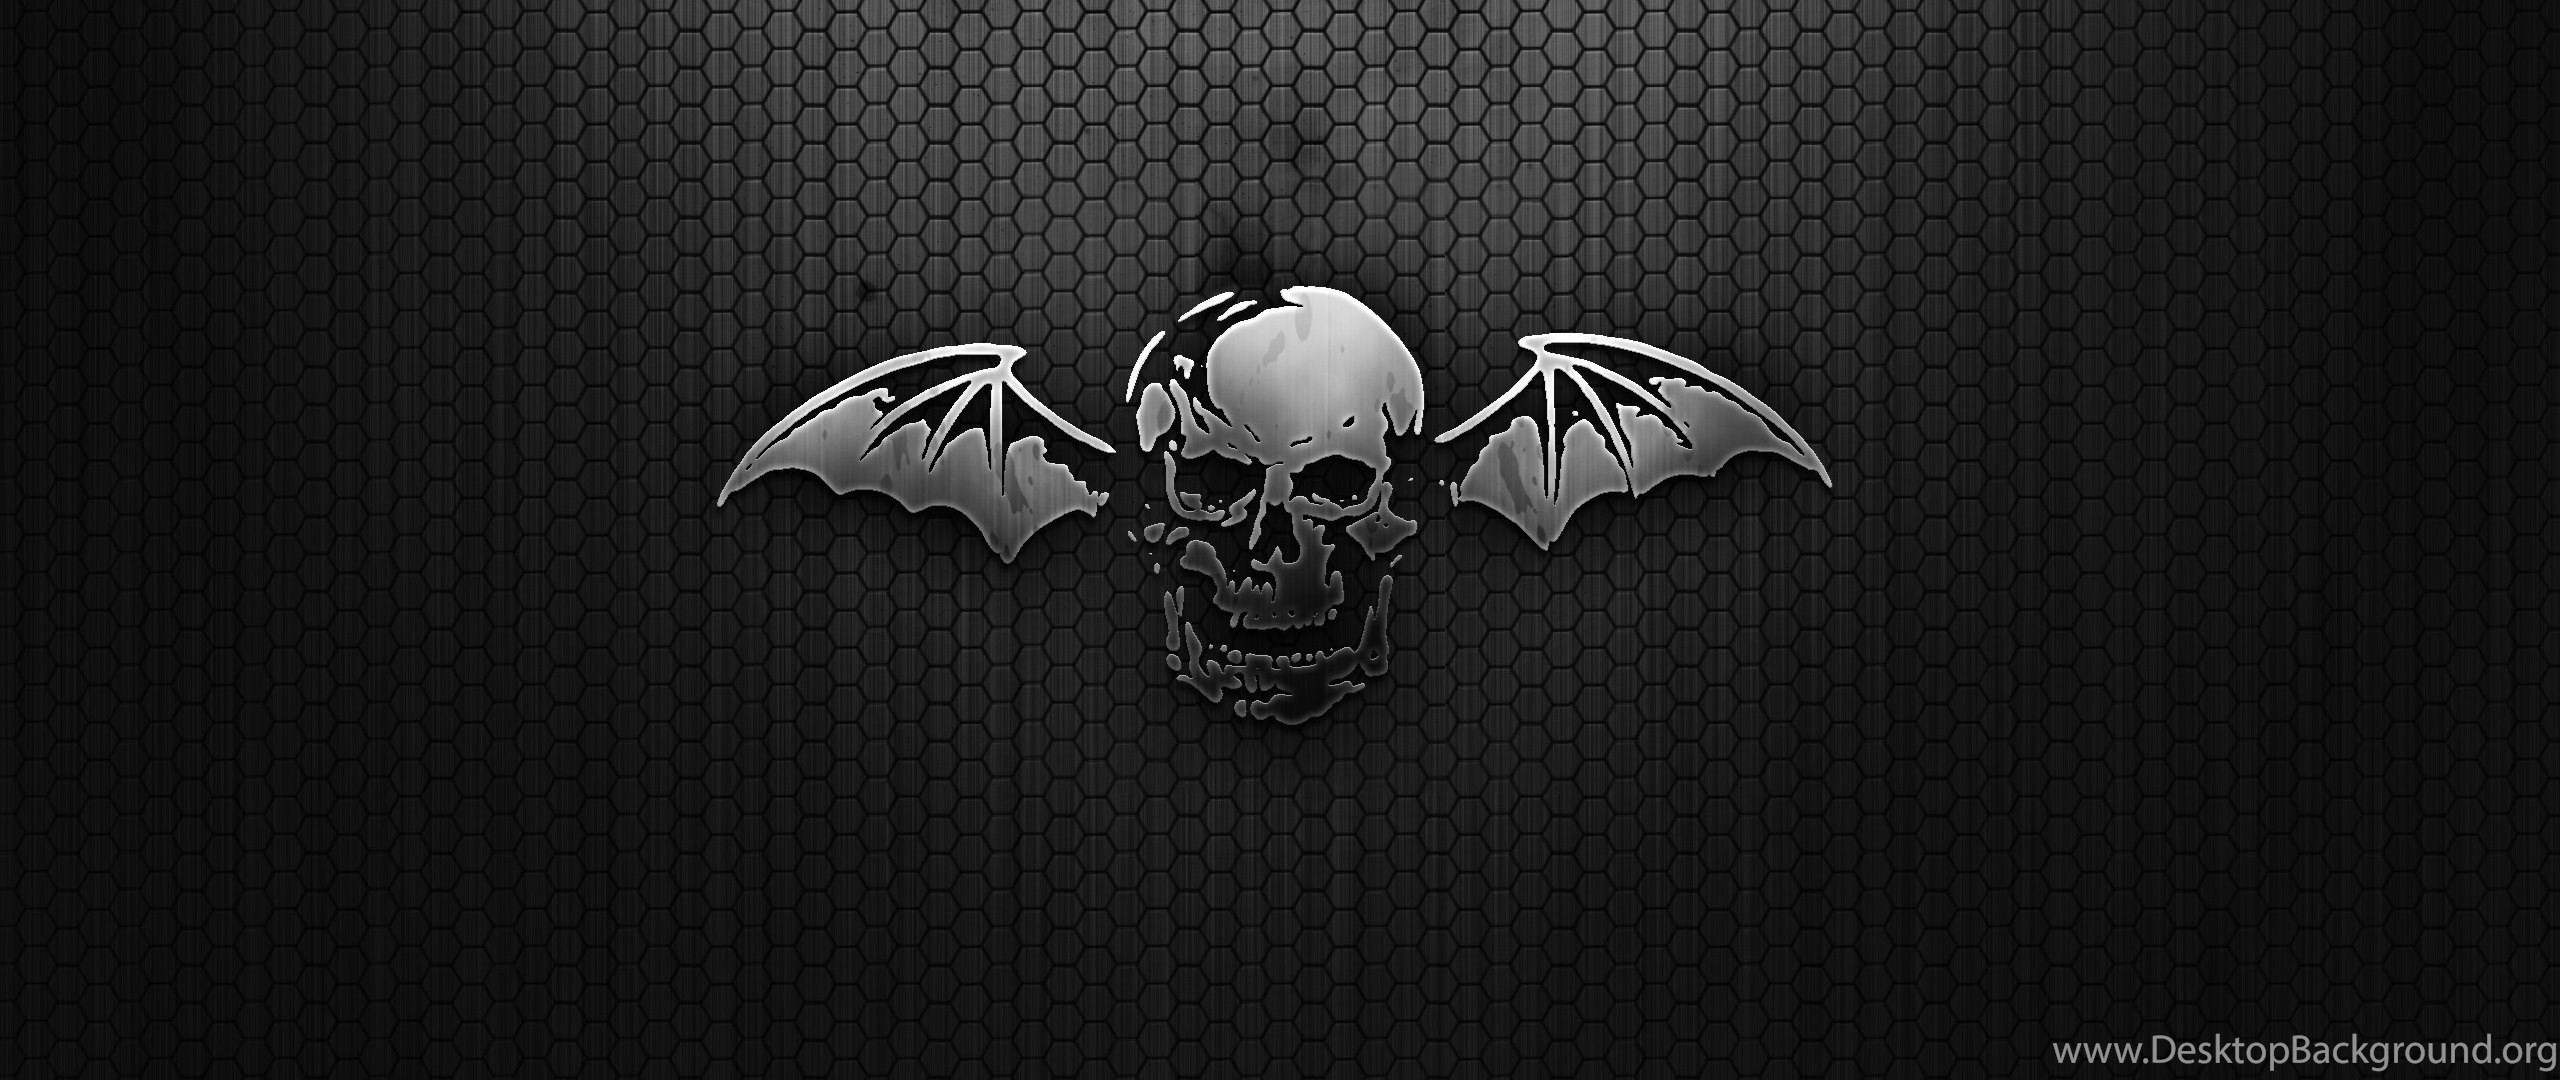 Dark skull wallpaper - Devil skull wallpaper ...